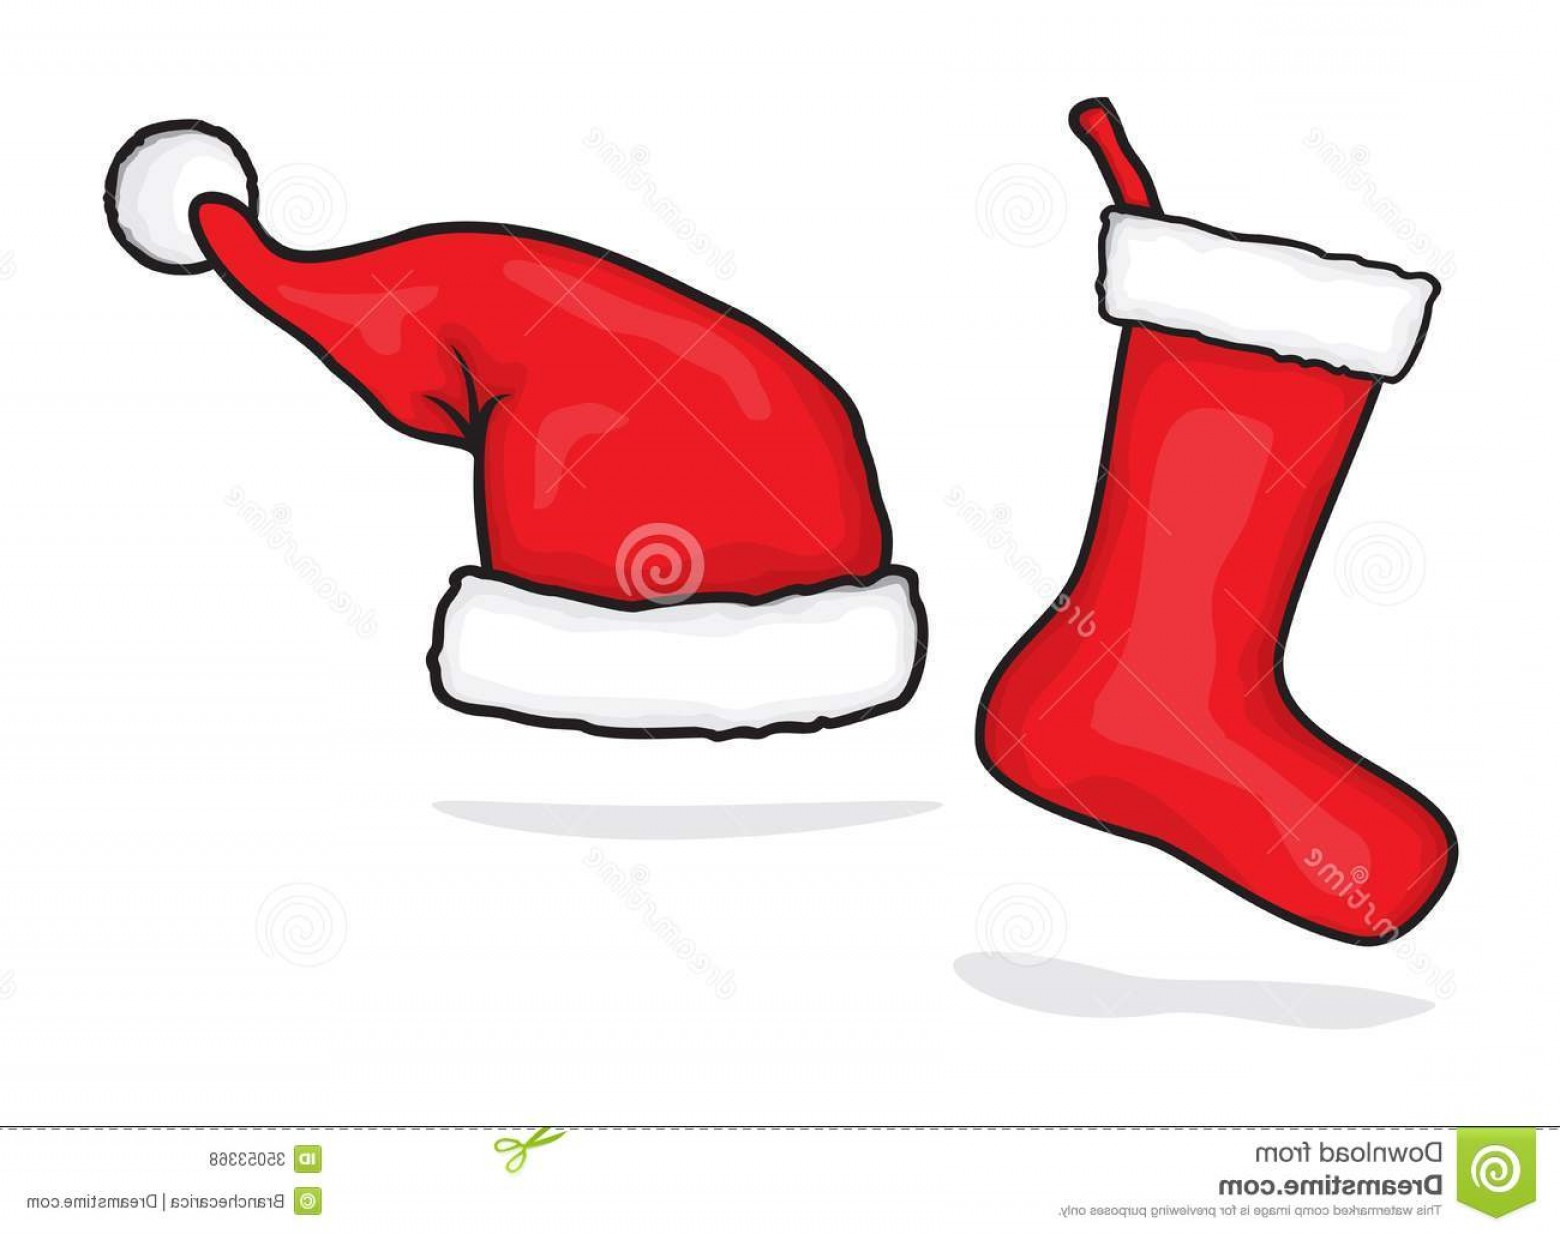 Stocking Hat Vector: Fancy Royalty Free Stock Photos Red Santa Hat Christmas Stocking Vector Illustration Image